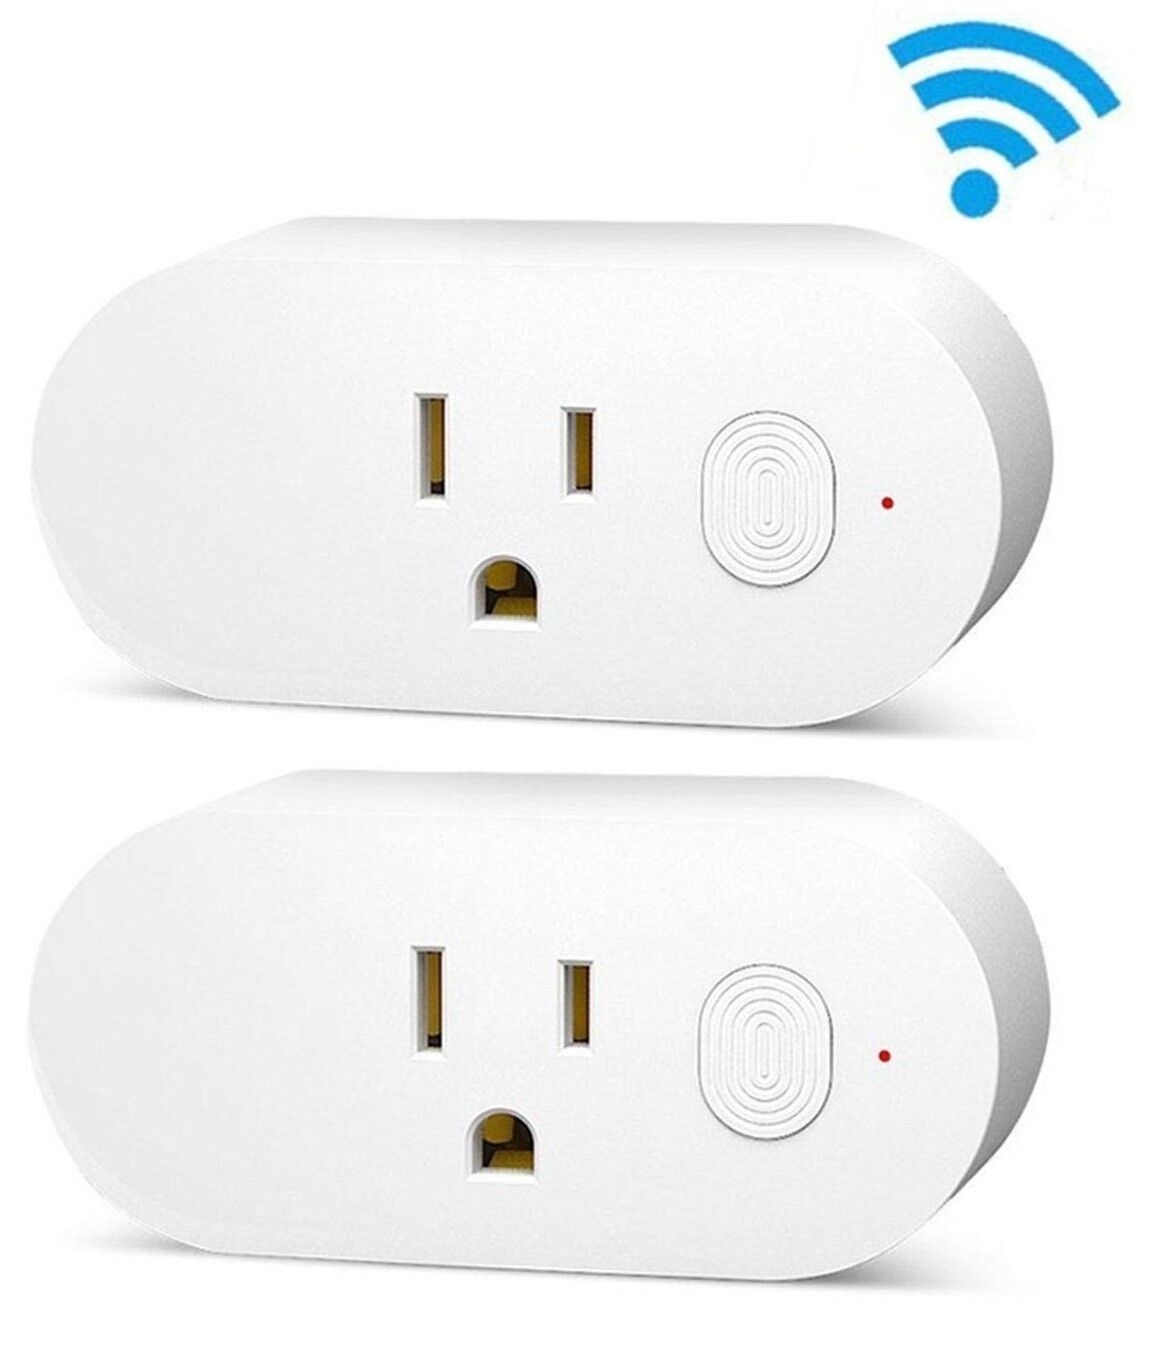 Wifi Smart Plug Mini Multi-function Outlet Work with Amazon Alexa and Google X2